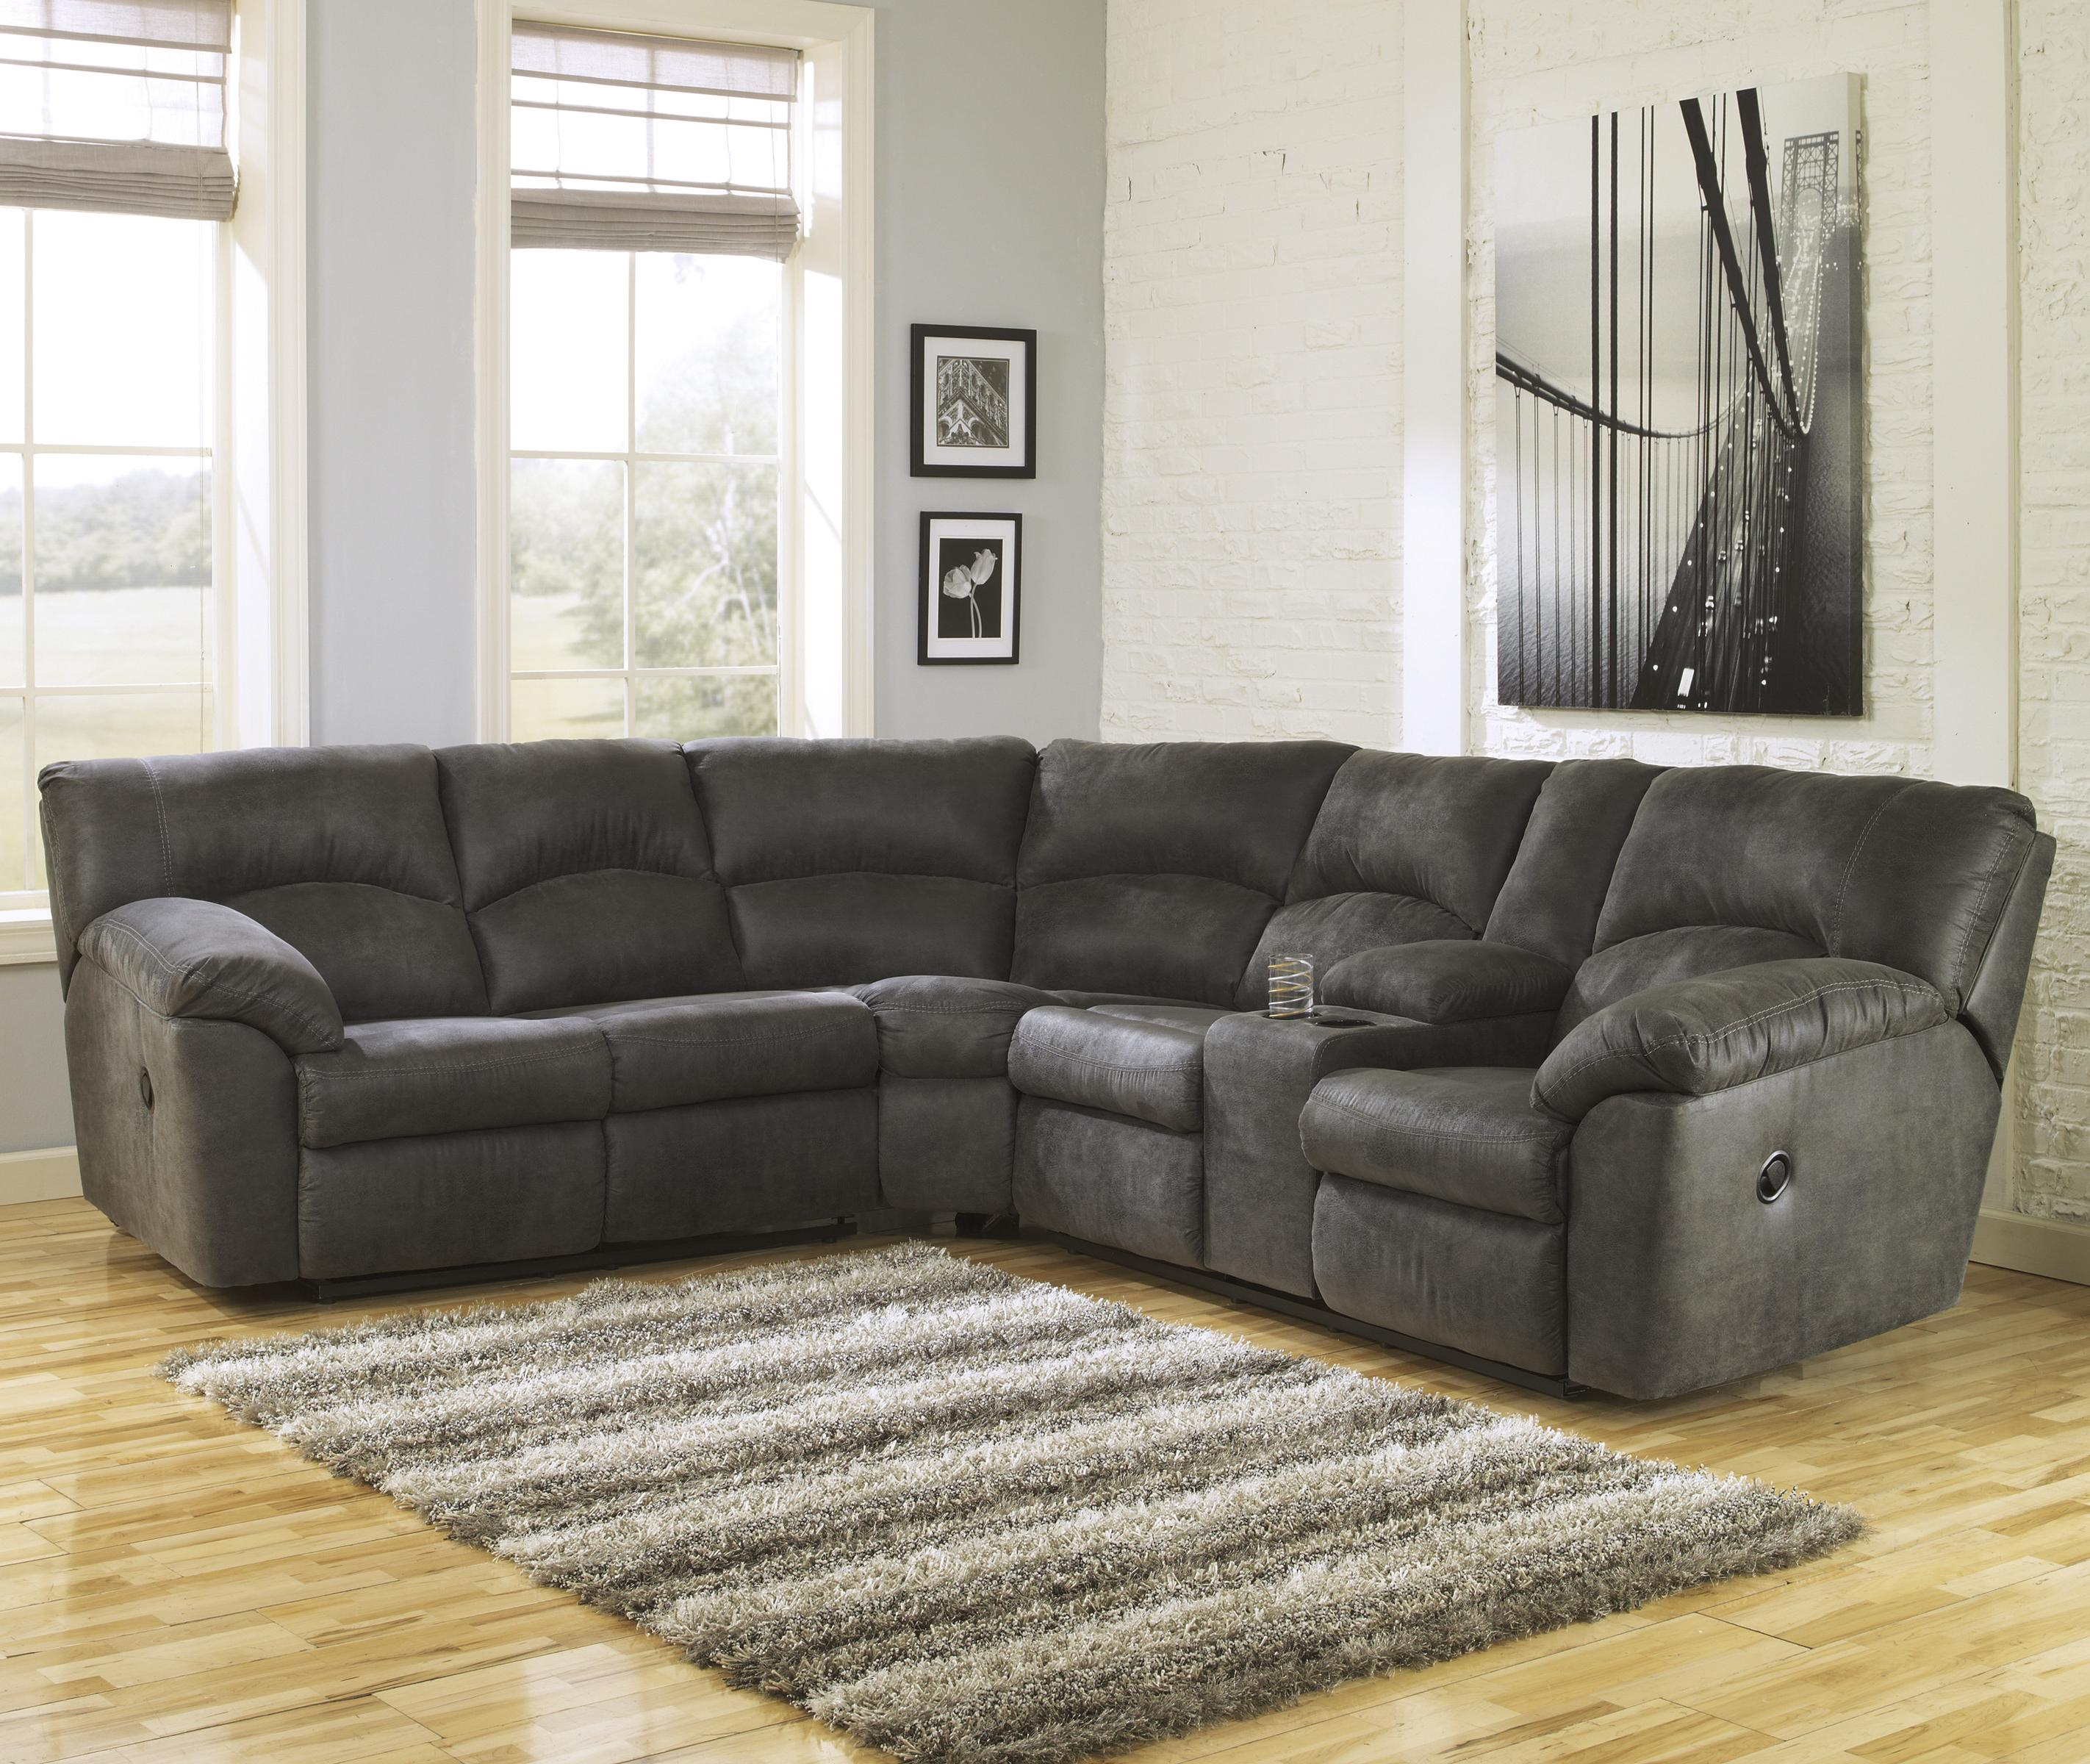 Tambo - Pewter 2-Piece Reclining Corner Sectional by Signature Design by Ashley at Gill Brothers Furniture